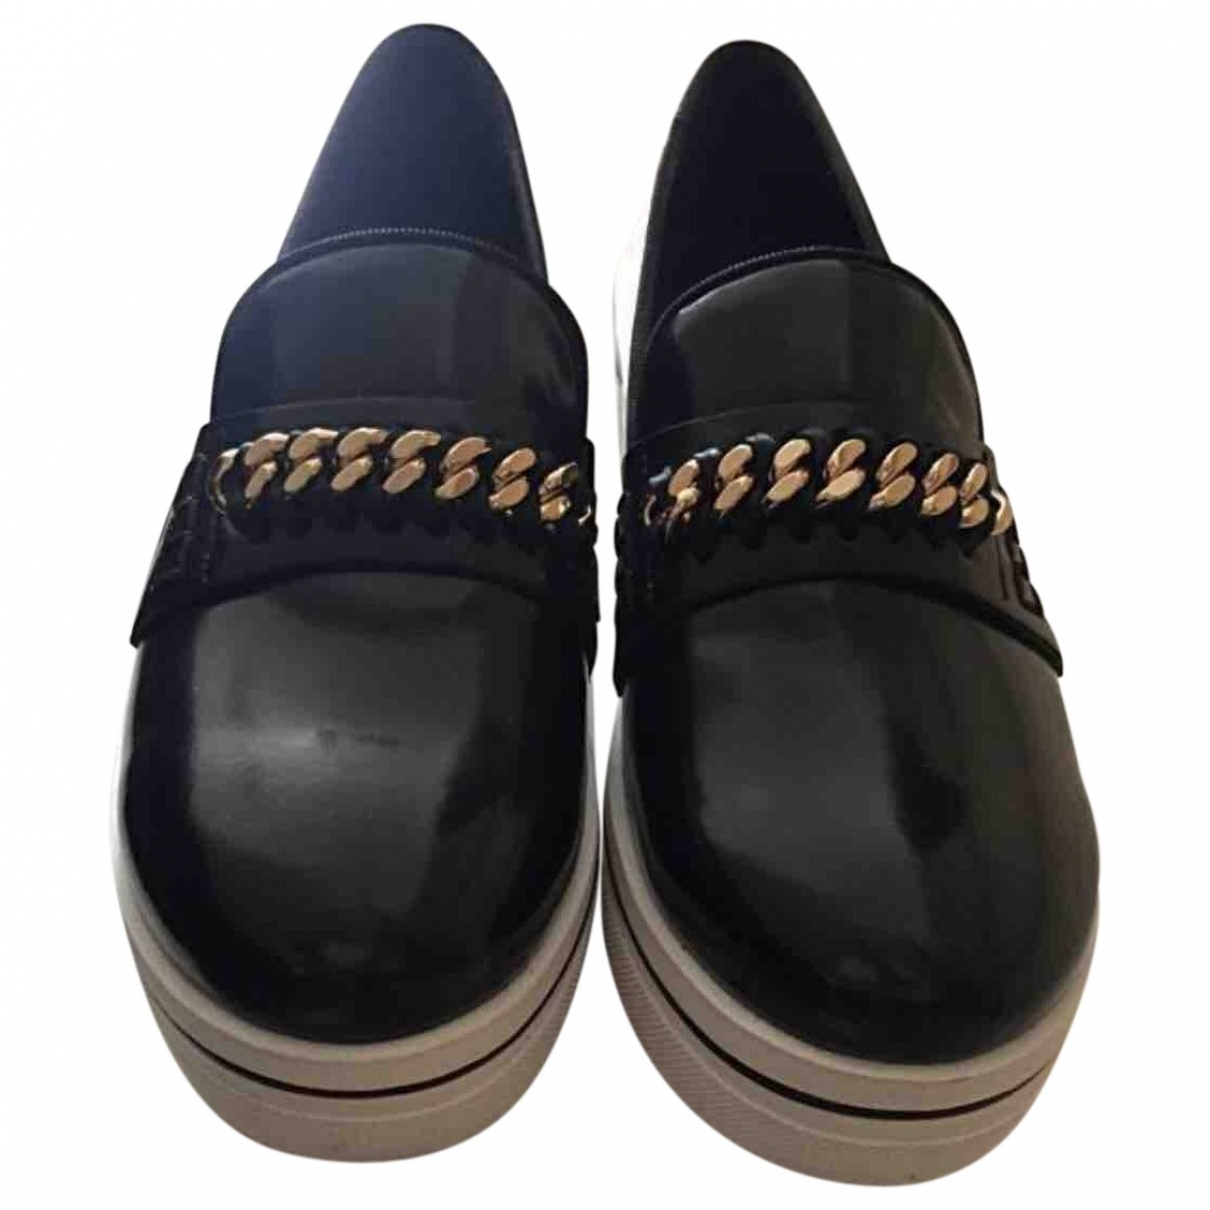 Stella Mccartney Binx Black Cloth Trainers for Women 37 EU